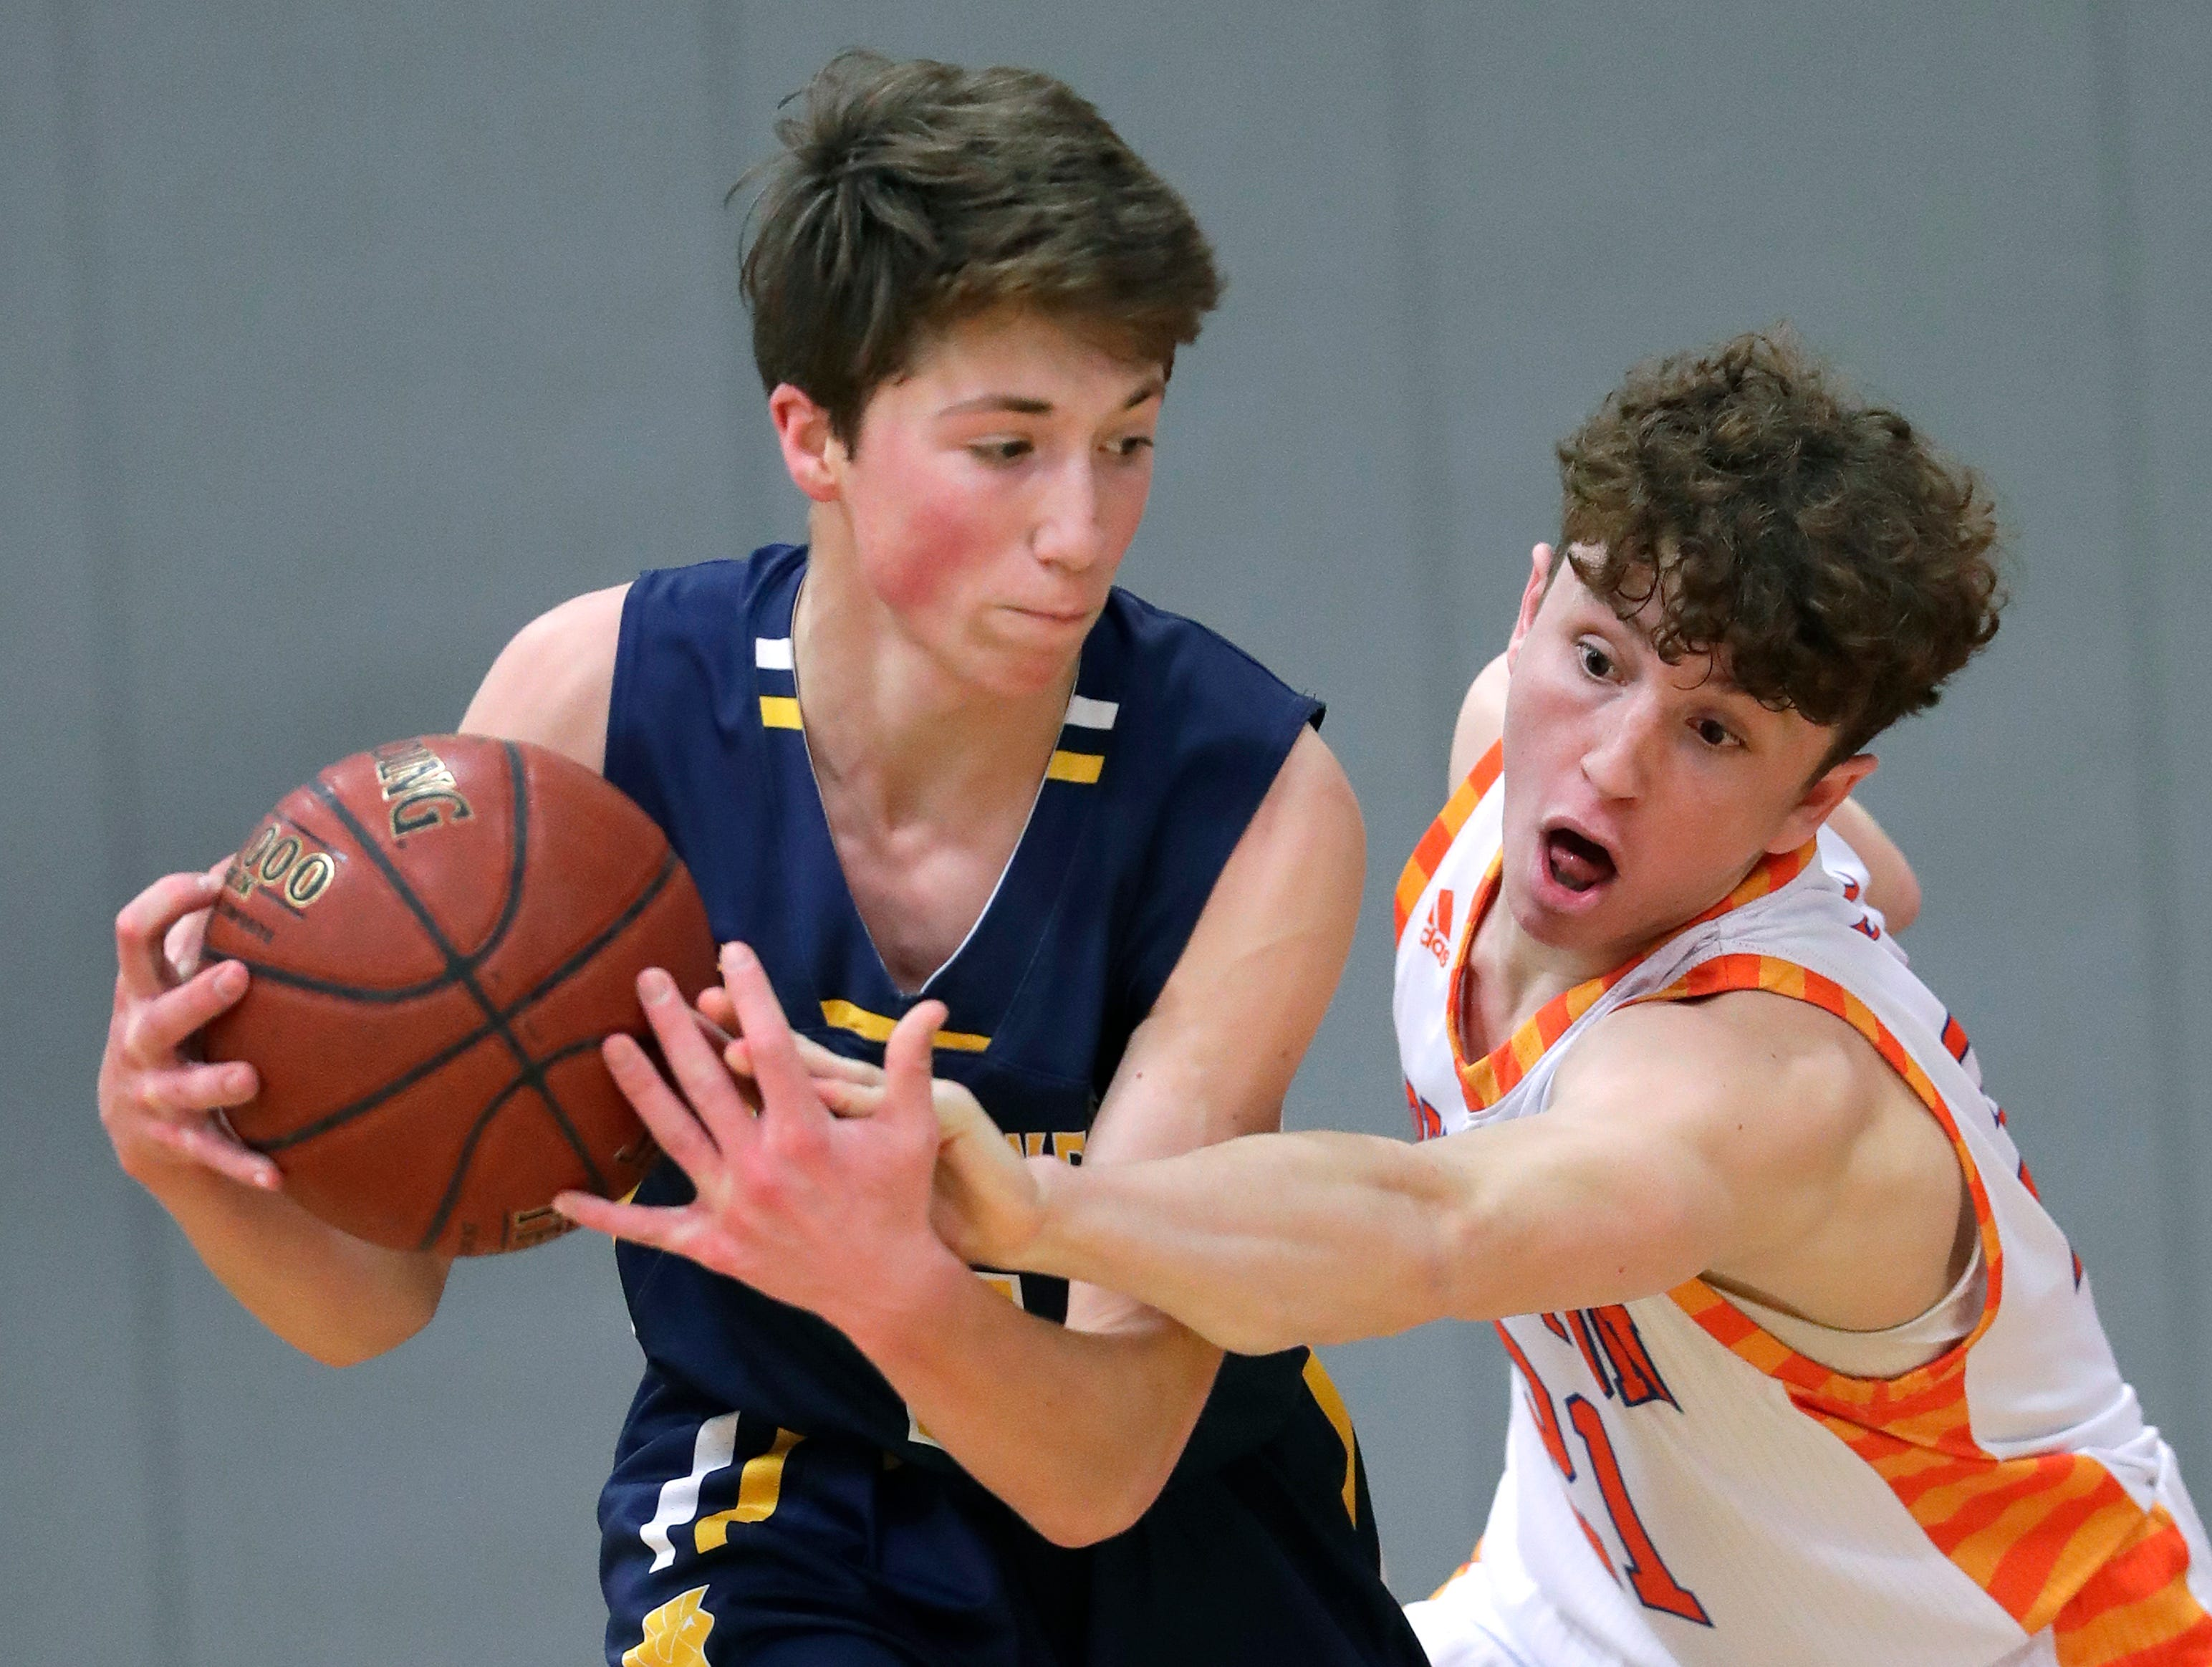 Appleton West  High School's Will Mahoney (21) tries to steal the ball against Wausau West High School's Tim Deloye (11) during their boys basketball game Friday, December 28, 2018, in Appleton, Wis. Dan Powers/USA TODAY NETWORK-Wisconsin